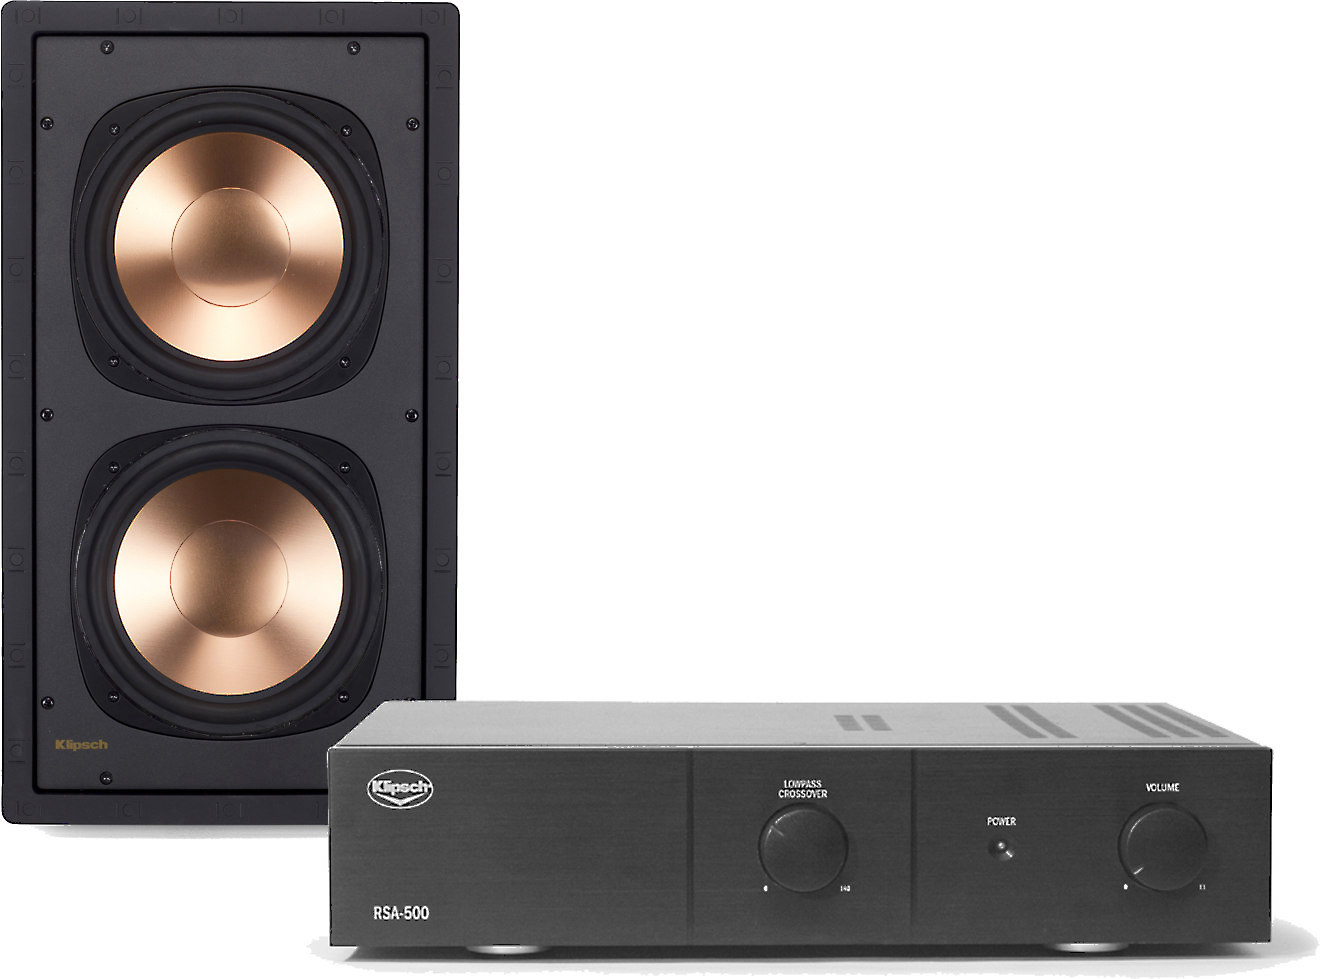 In Wall Subwoofer >> Klipsch Rw 5802 Ii Rsa 500 Passive In Wall Subwoofer With Matching